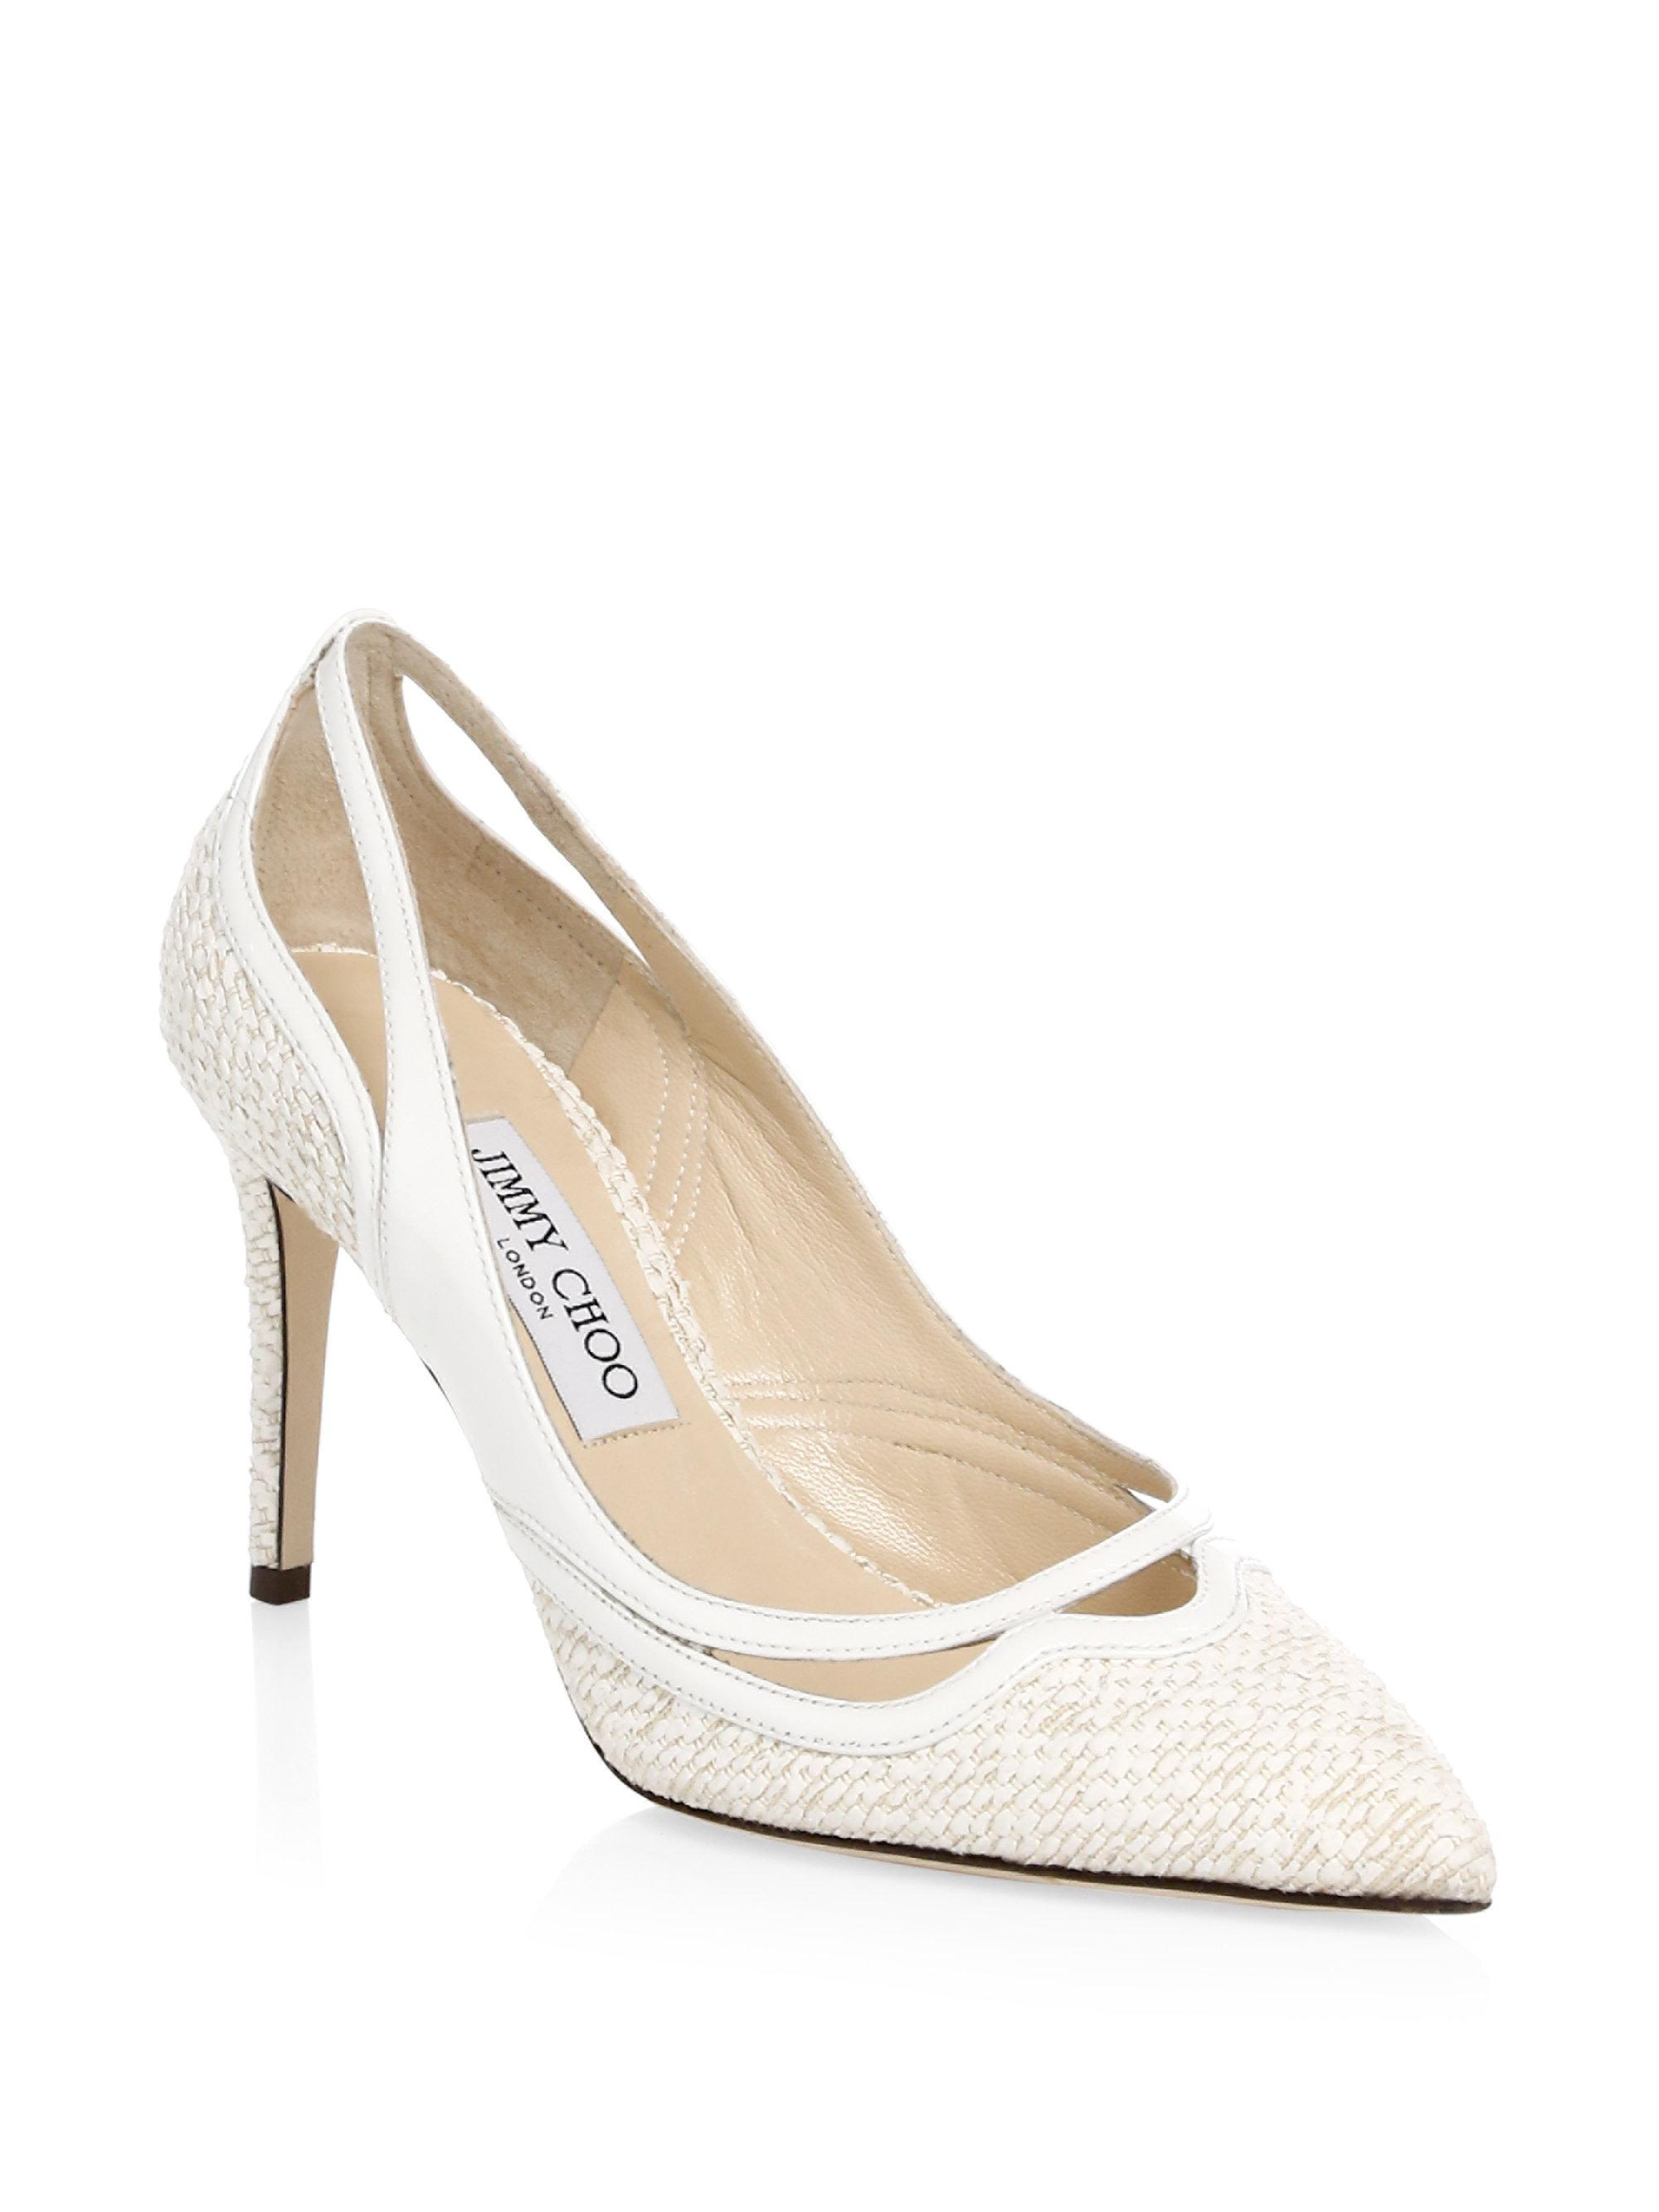 7ce04662cc7 Jimmy Choo - Multicolor Hickory Point-toe Pumps - Lyst. View fullscreen